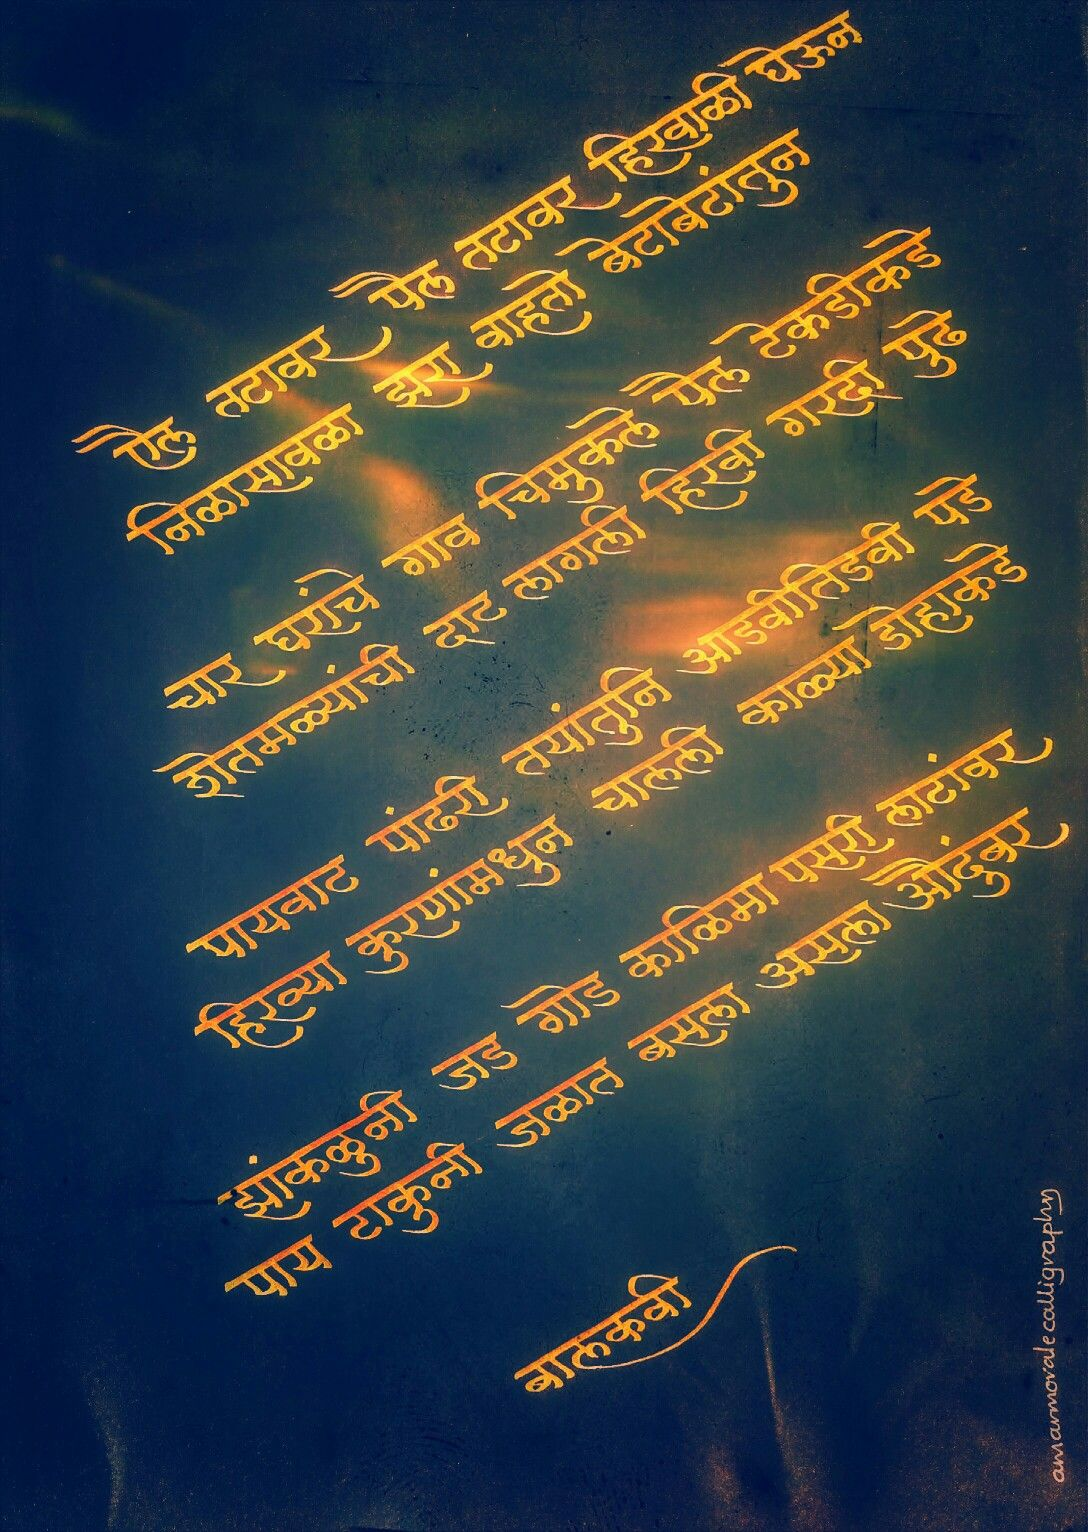 ऐल तटावर _ बालकवी Calligraphy by Amar Morale (With images